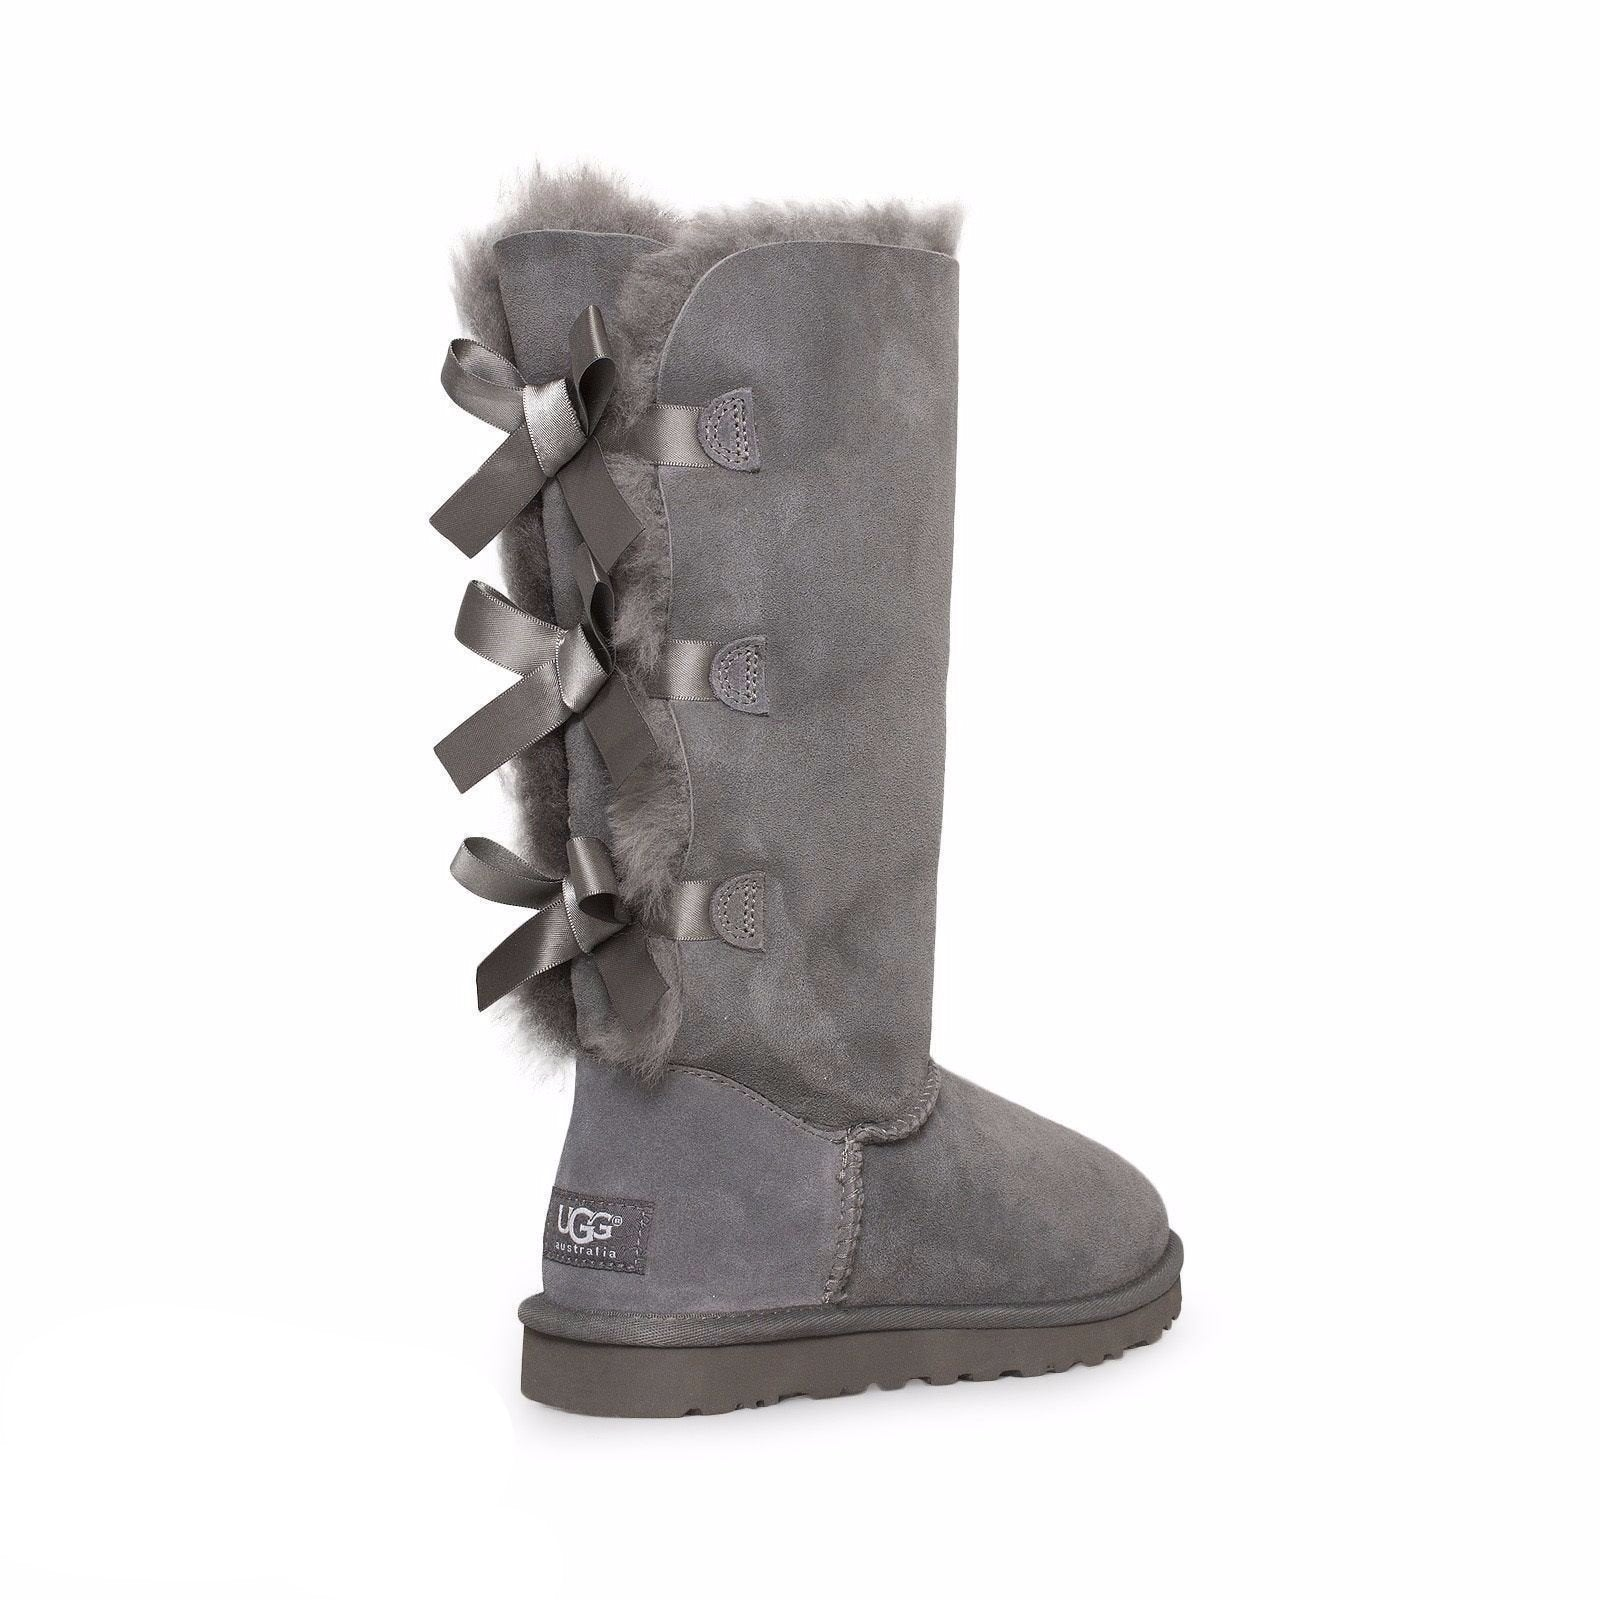 42a8fd383a2 UGG Bailey Bow Tall Grey Boots